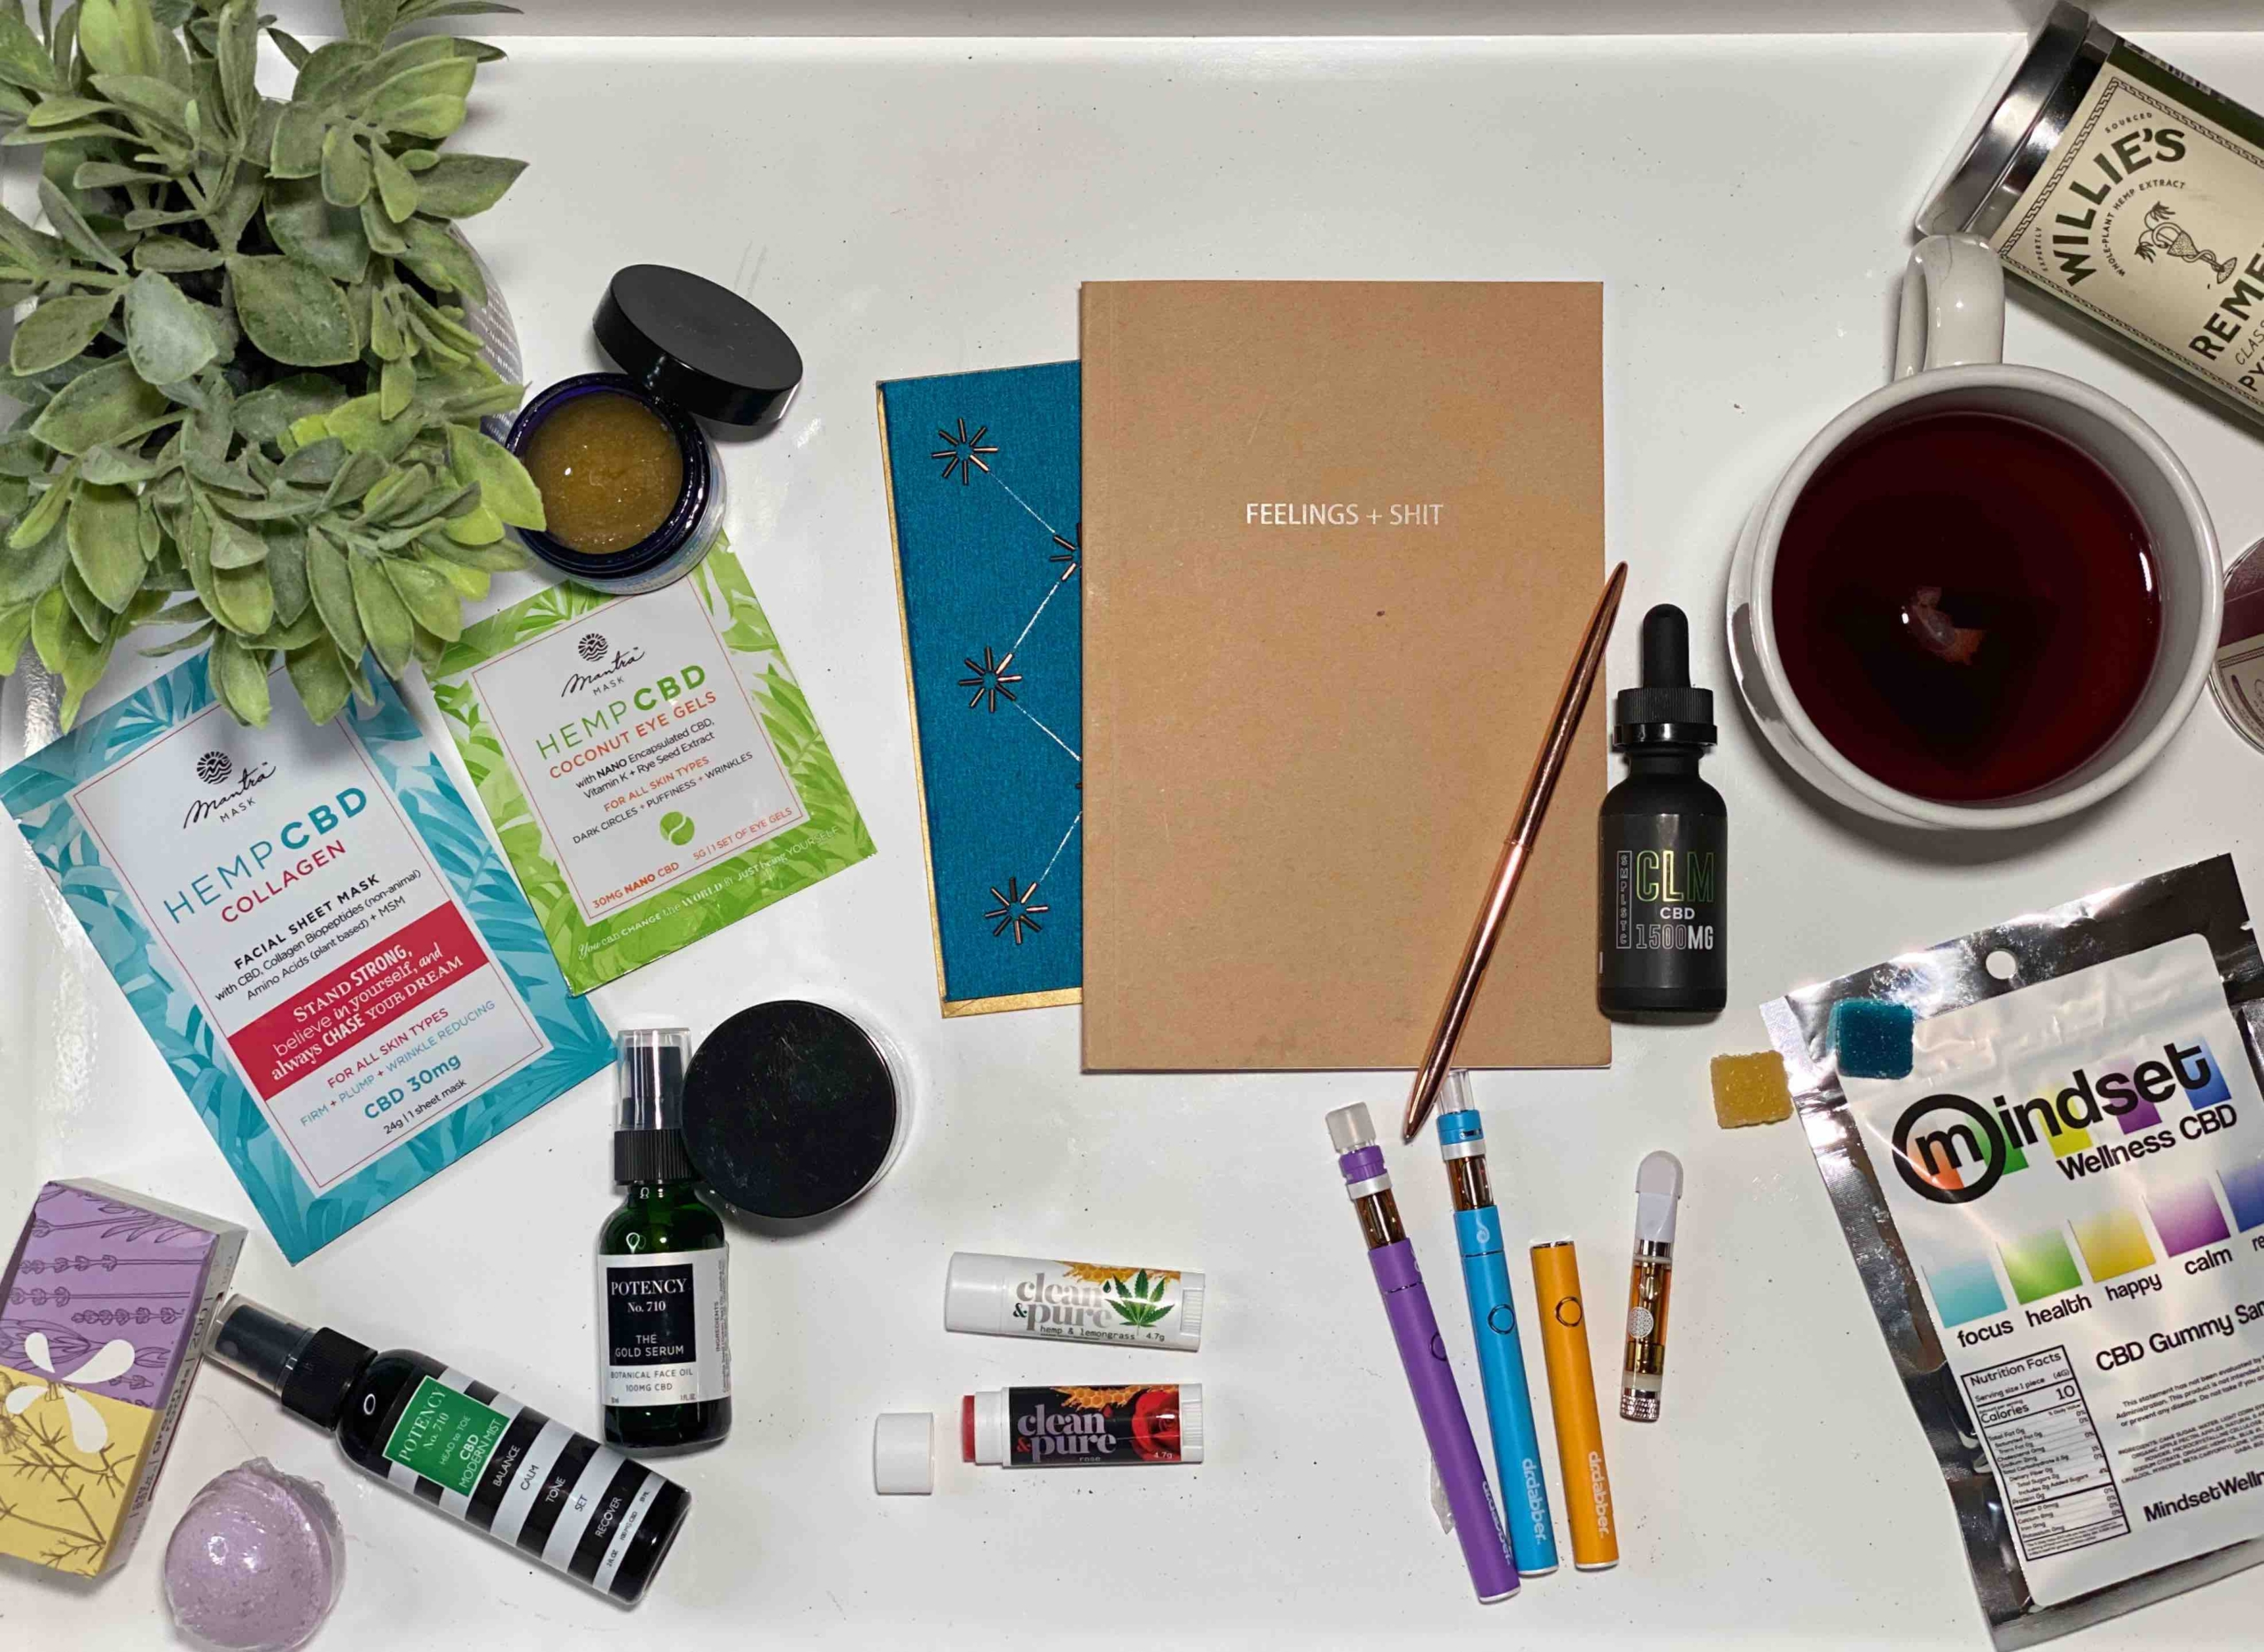 These CBD Products Will Help Alleviate Discomfort From Stress, Aches And Tensions